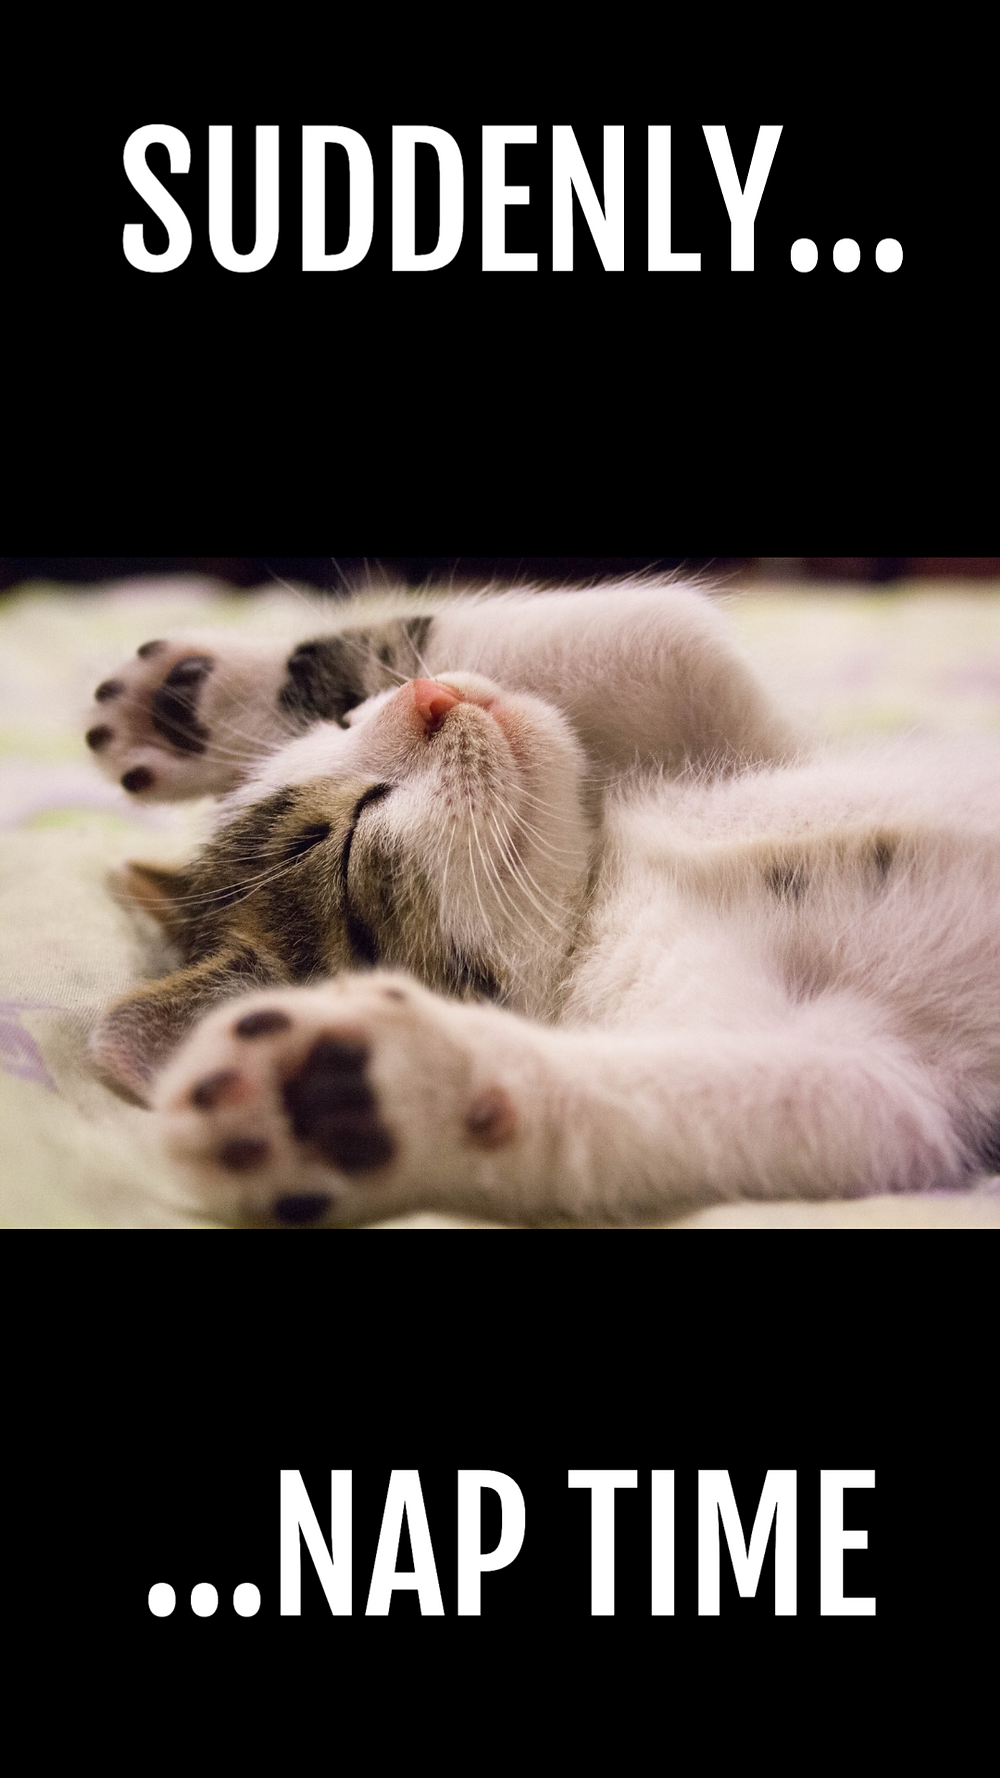 Napping social media story template with cute kitten taking a nap